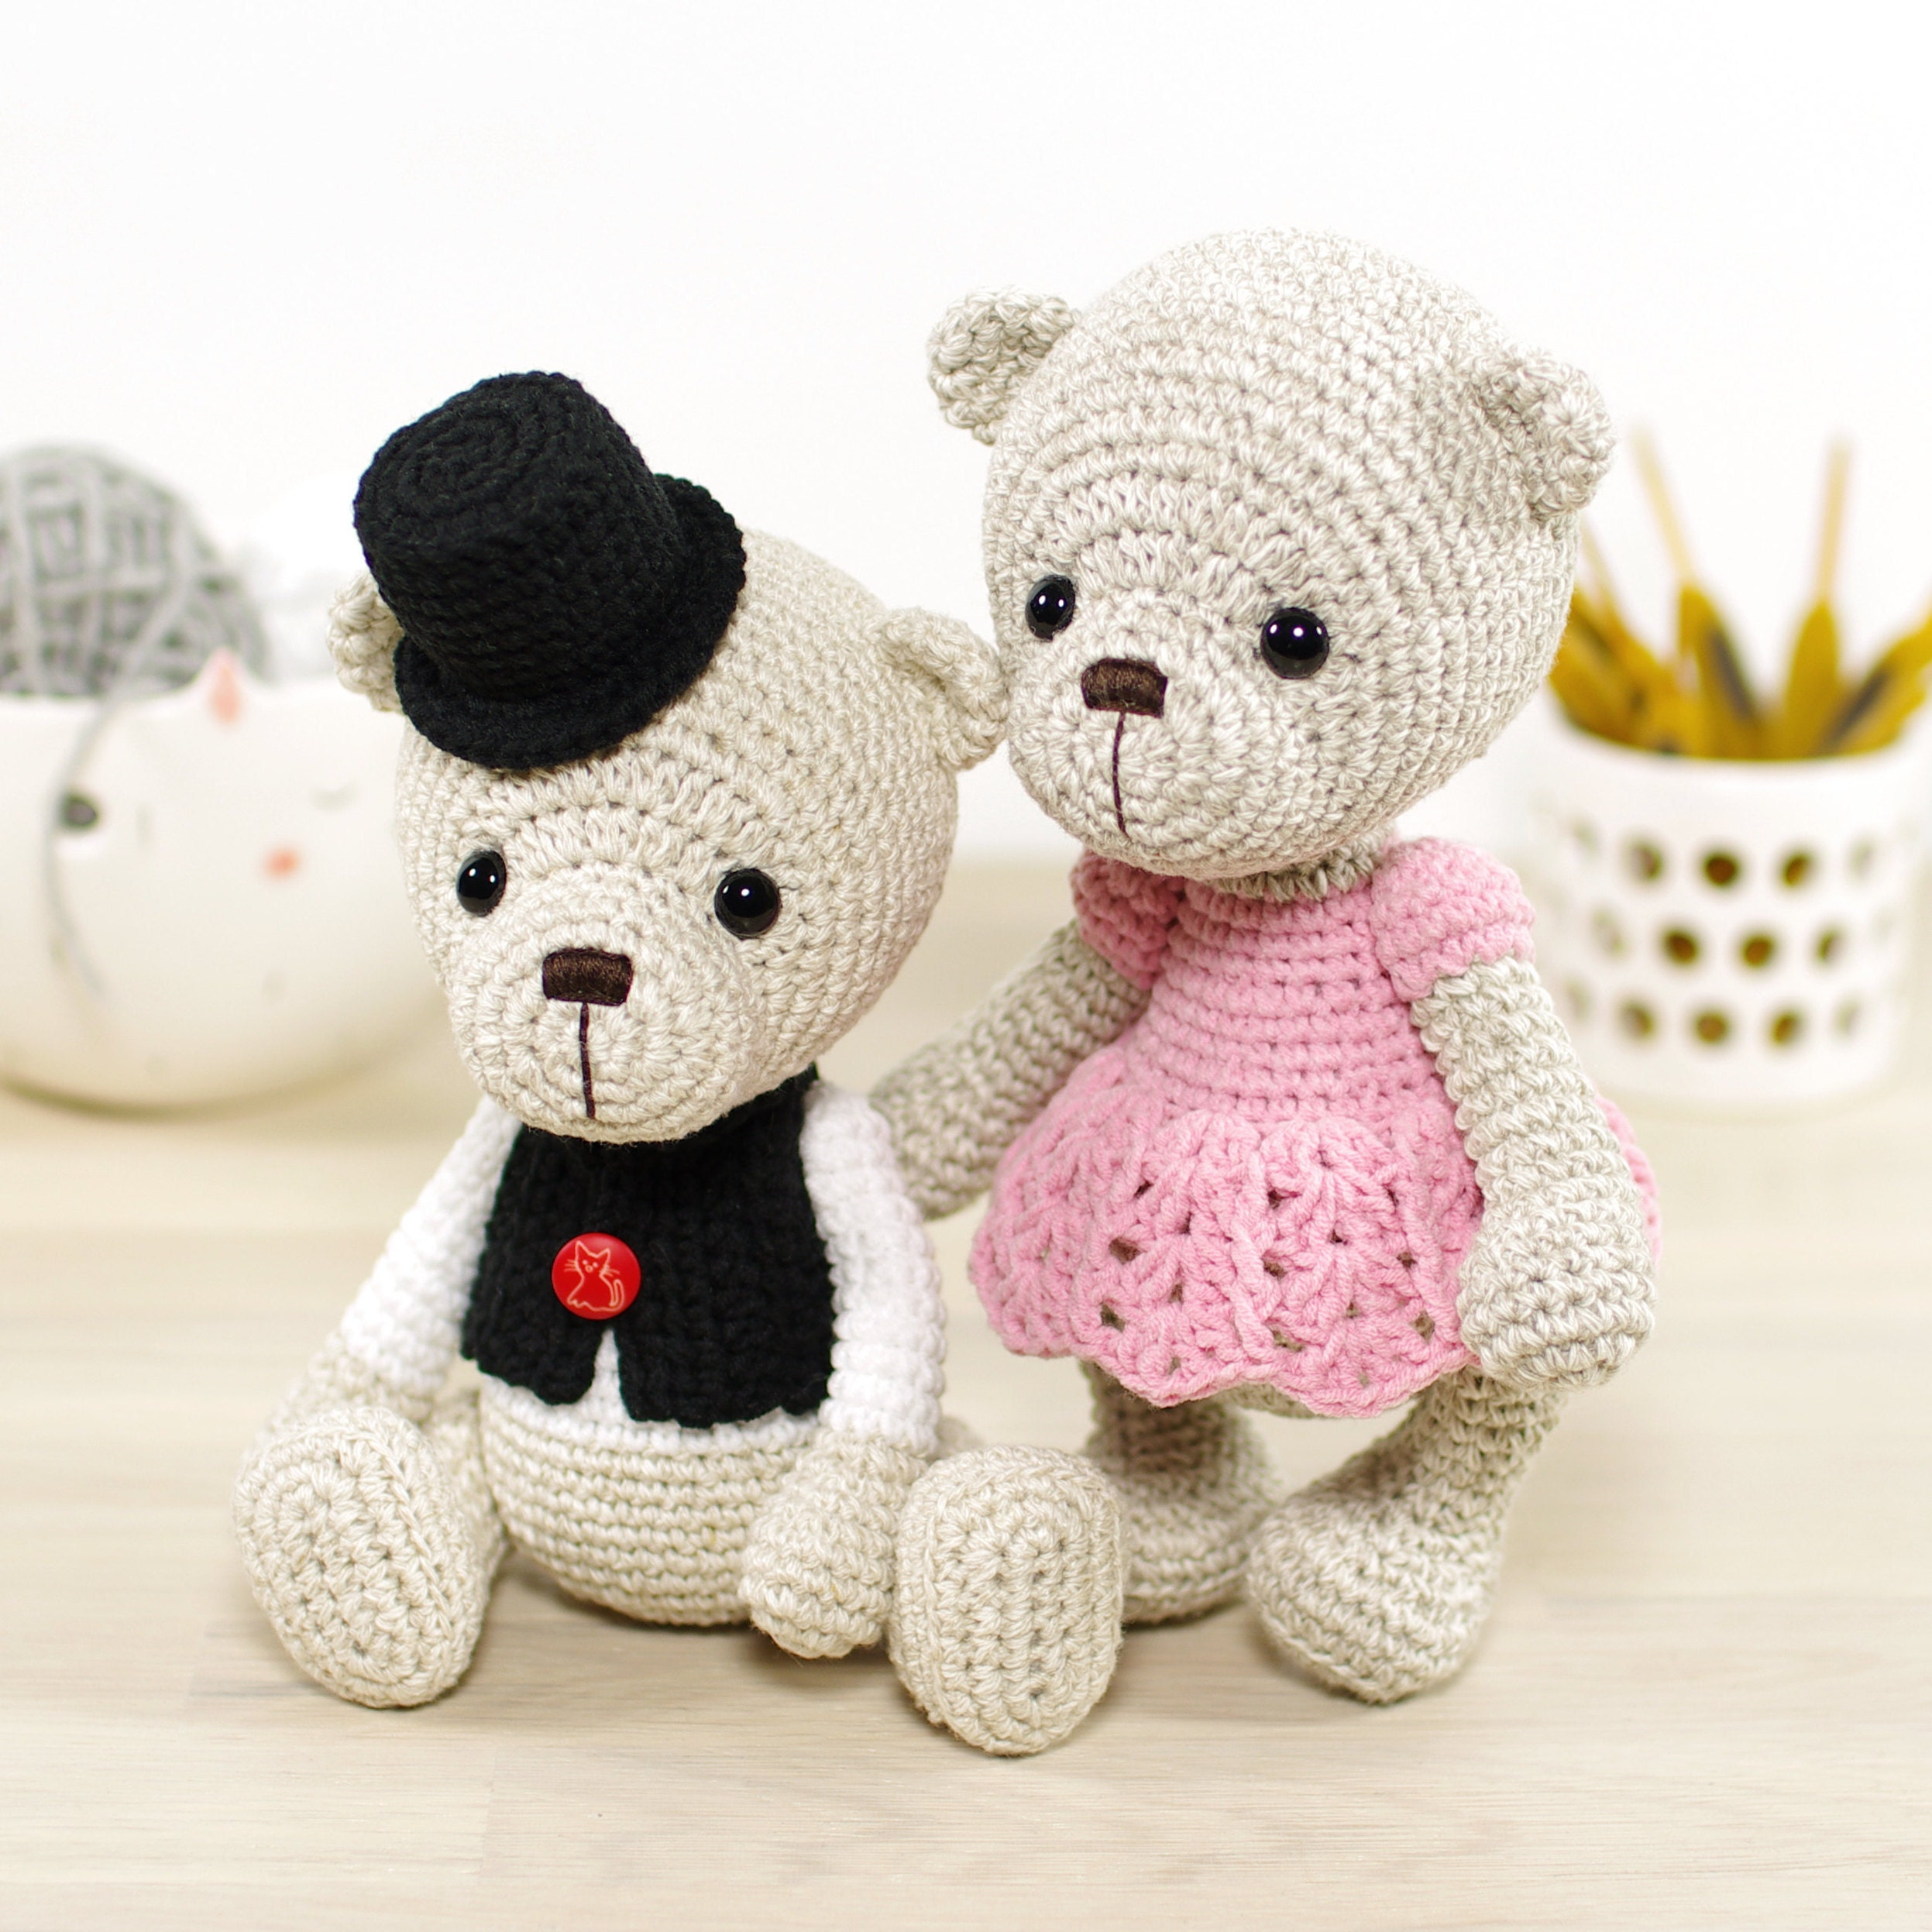 Amigurumi crochet animal and doll patterns by KristiTullus on Etsy